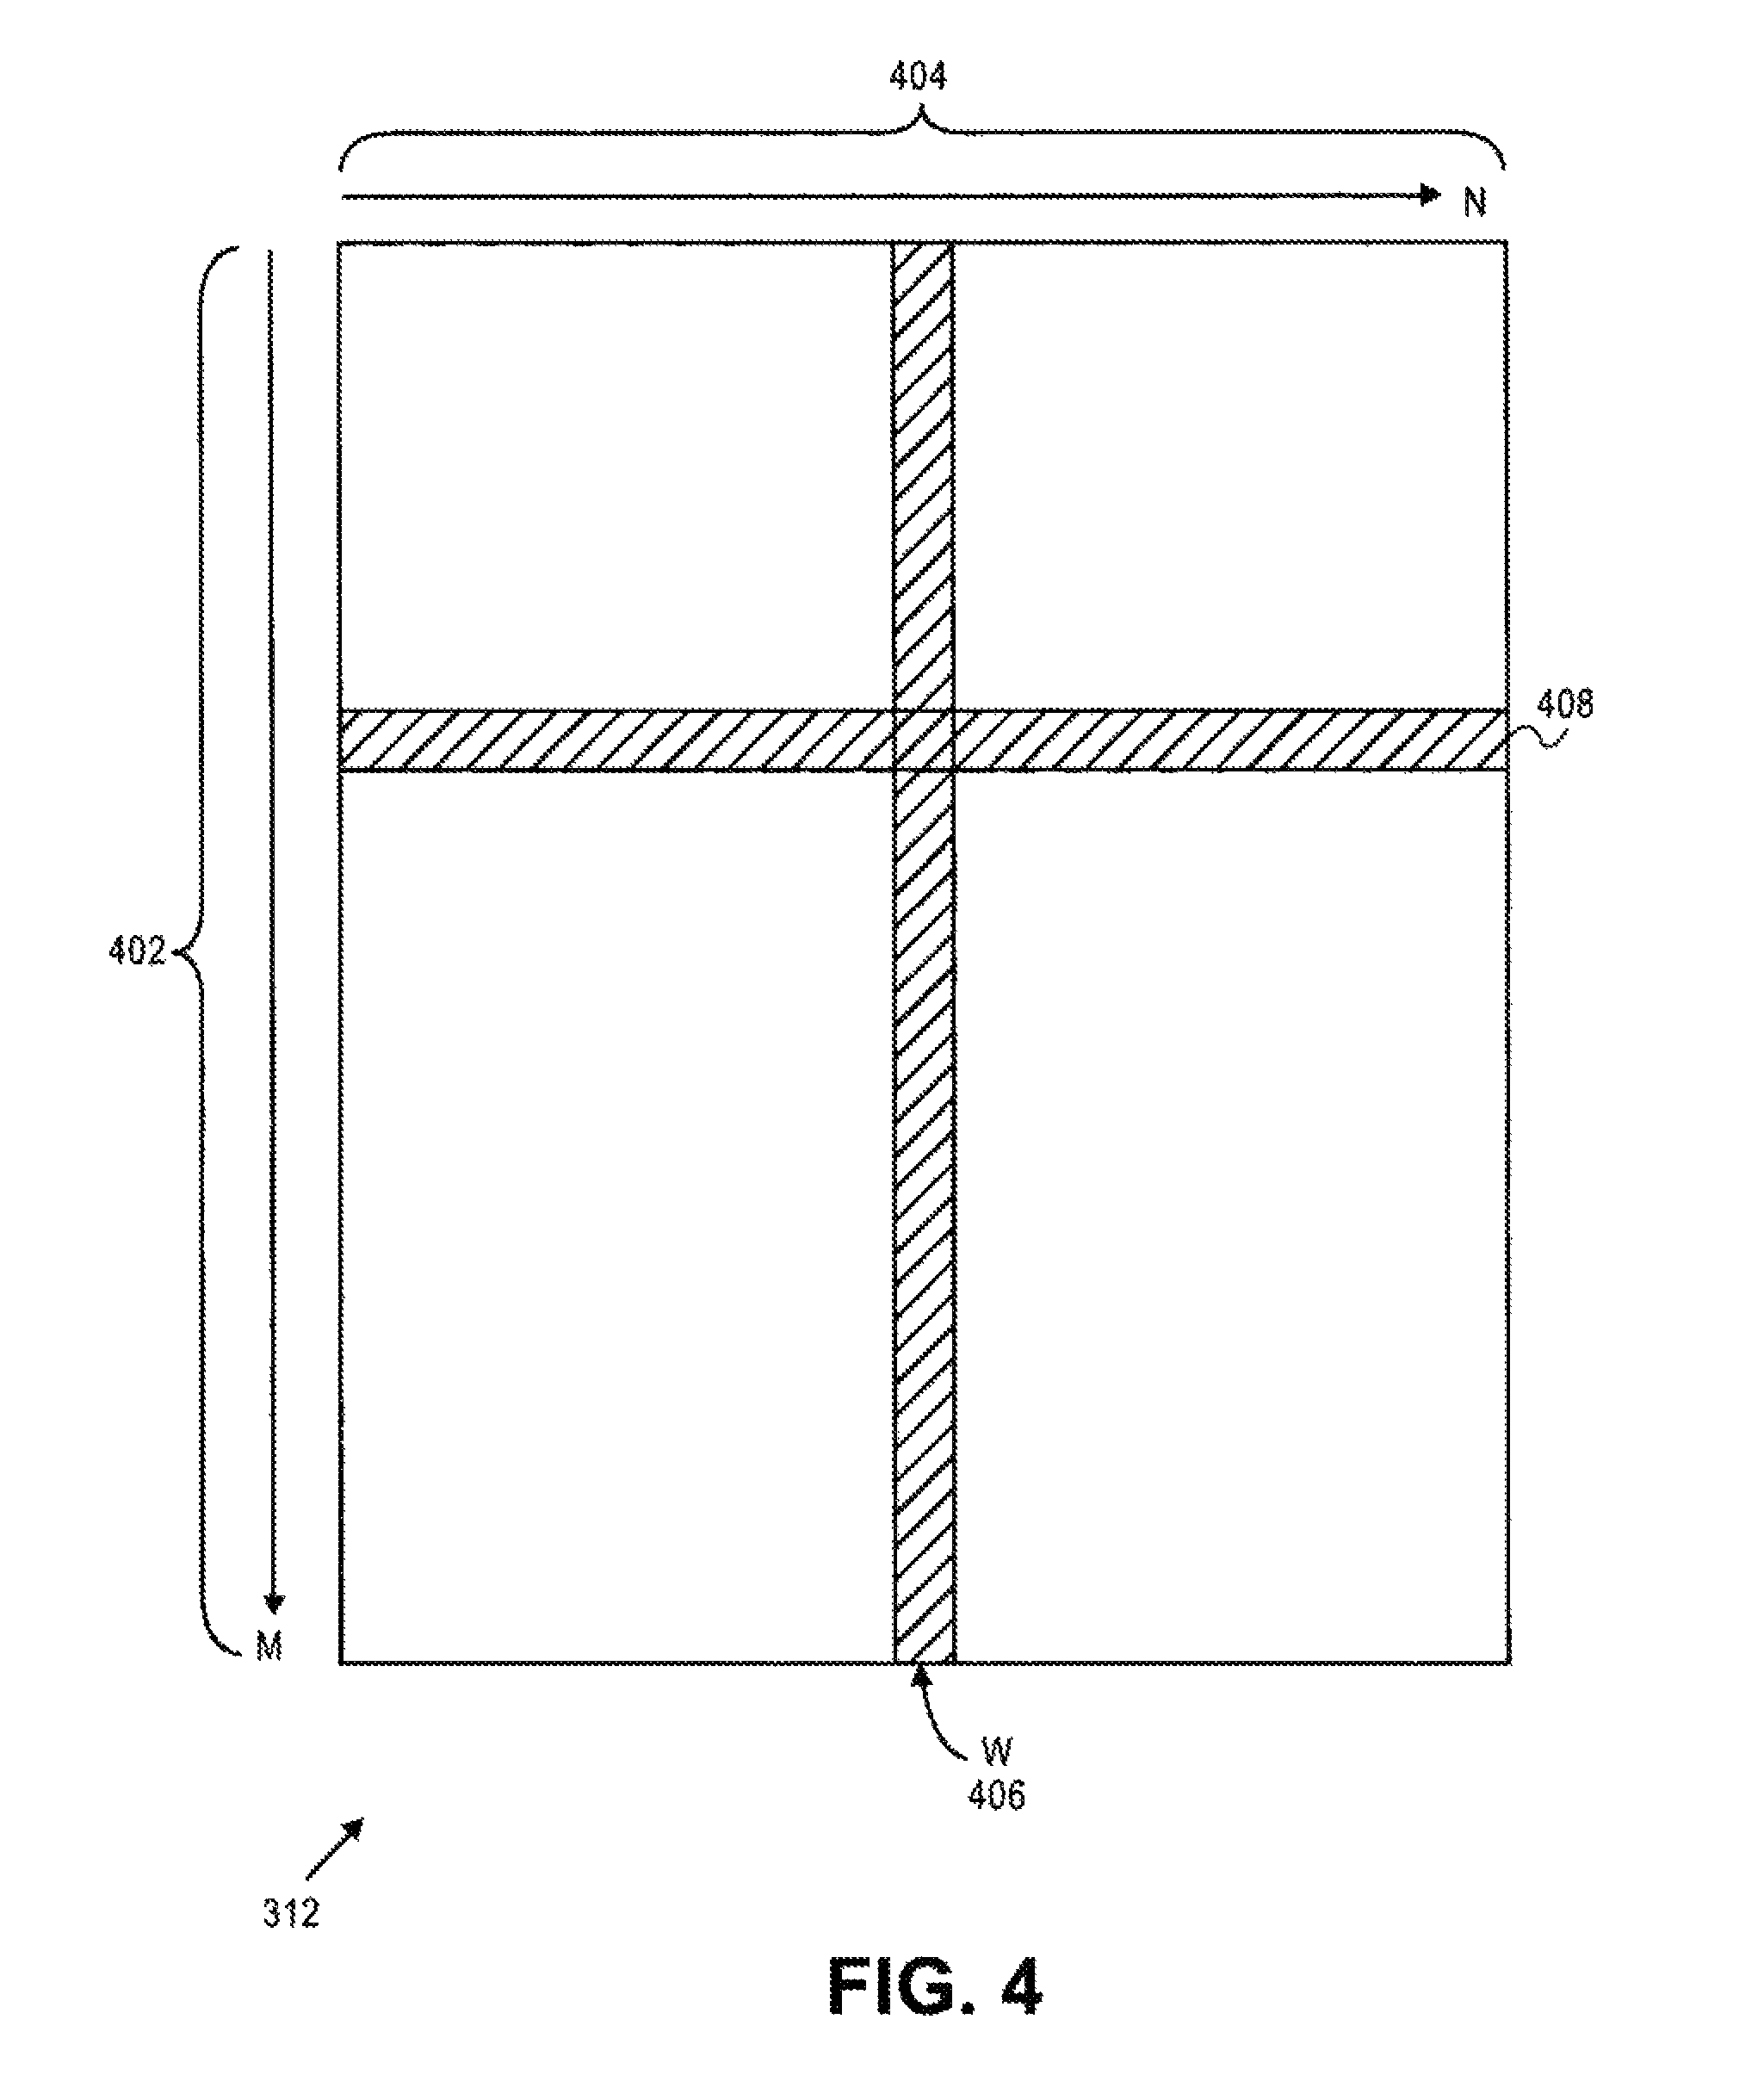 US9218809B2 - Fast, language-independent method for user